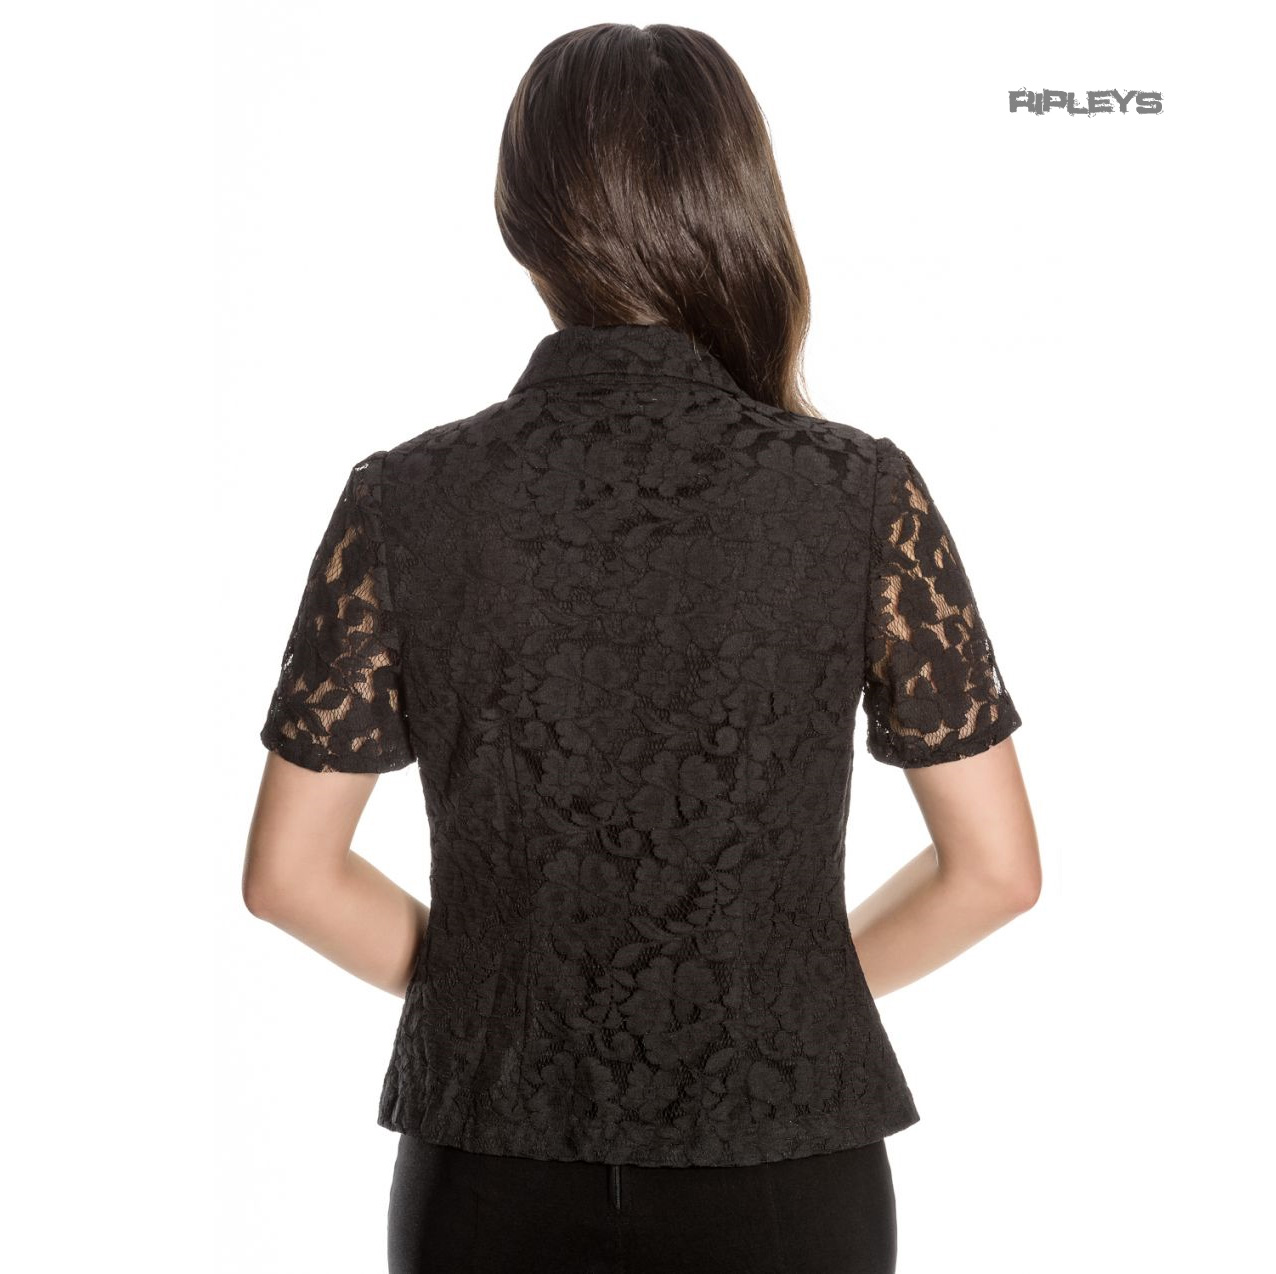 Hell-Bunny-Spin-Doctor-Vampire-Gothic-Shirt-Top-ROWENA-Lace-Blouse-All-Sizes Indexbild 20